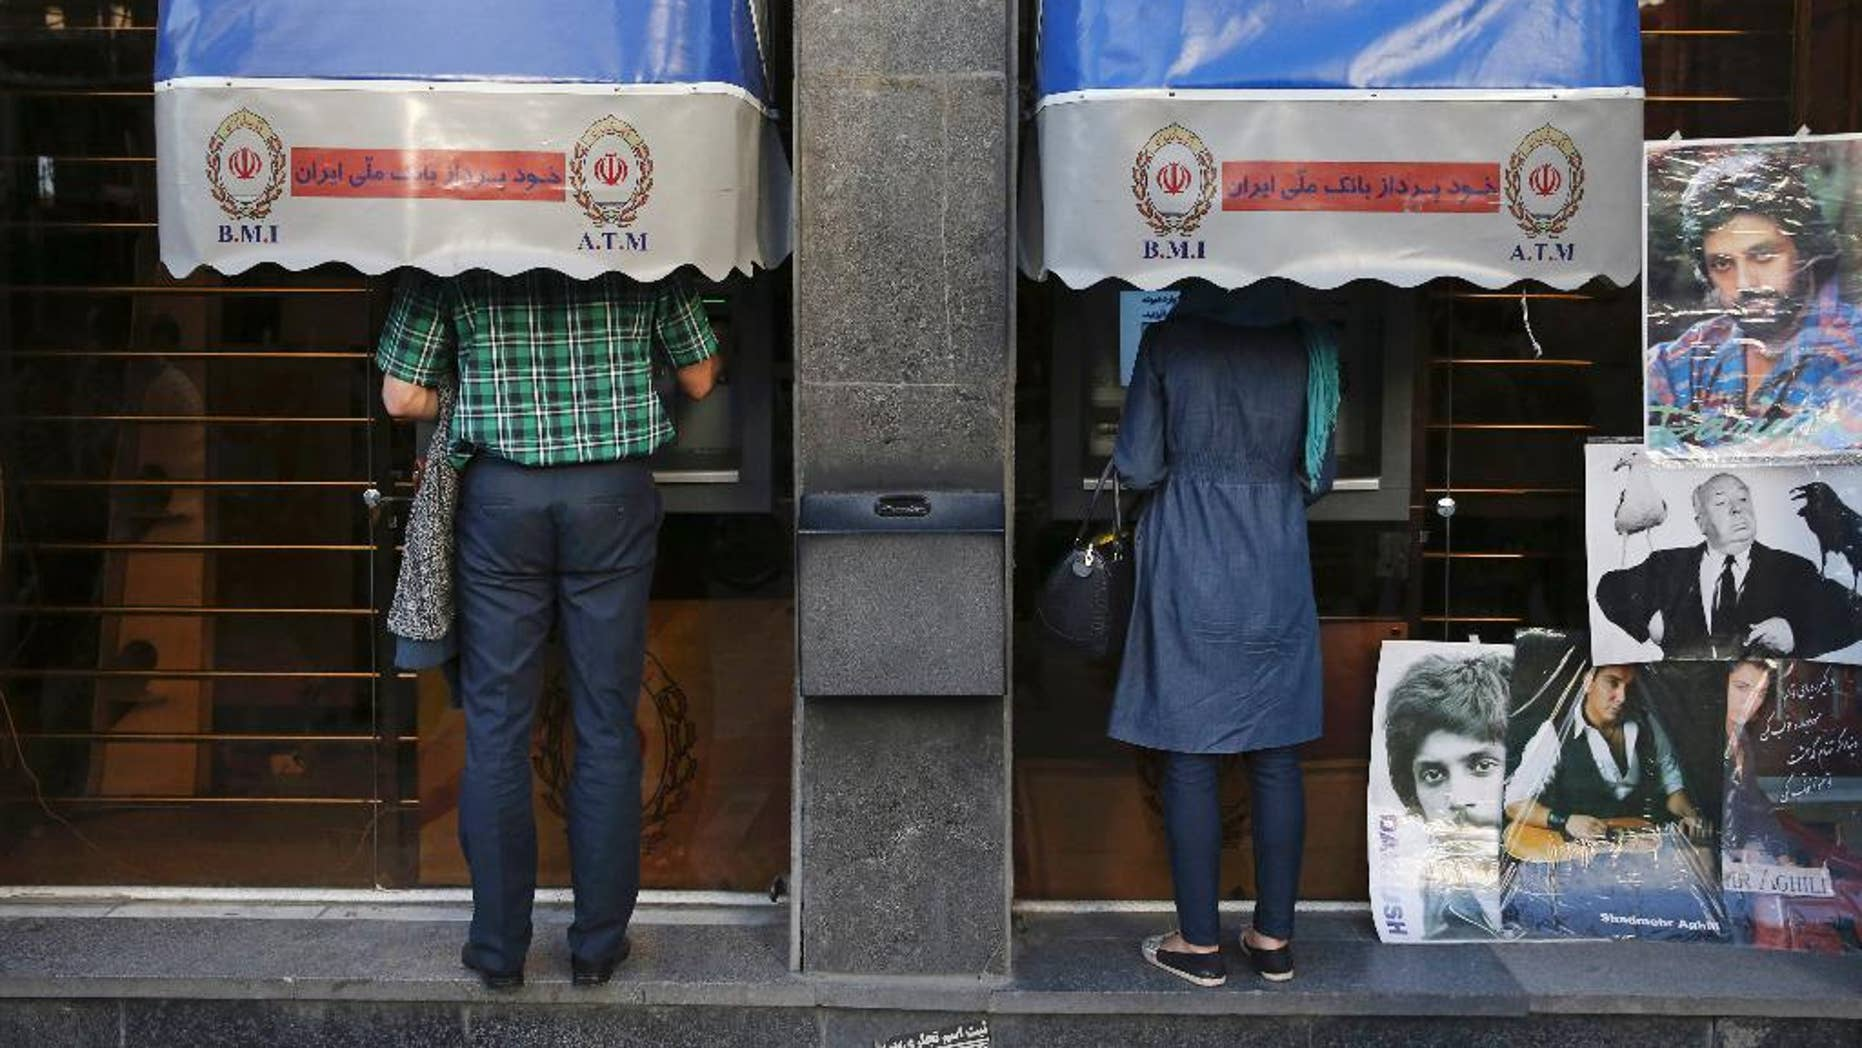 FILE -- In this April 4, 2015 file photo, Iranians use ATM machines of Bank Melli Iran in downtown Tehran, Iran. Iranian media are saying the country's banks will begin issuing credit cards for the first time in decades. Reports by several newspapers, including the daily Donya-e-Eqtesad, Monday, Sept. 26, 2016 said the cards will be for domestic use only and do not involve any sort of partnership with a major international credit card company. So far, Iranian banks have only issued debit and prepaid cards. (AP Photo/Vahid Salemi, File)